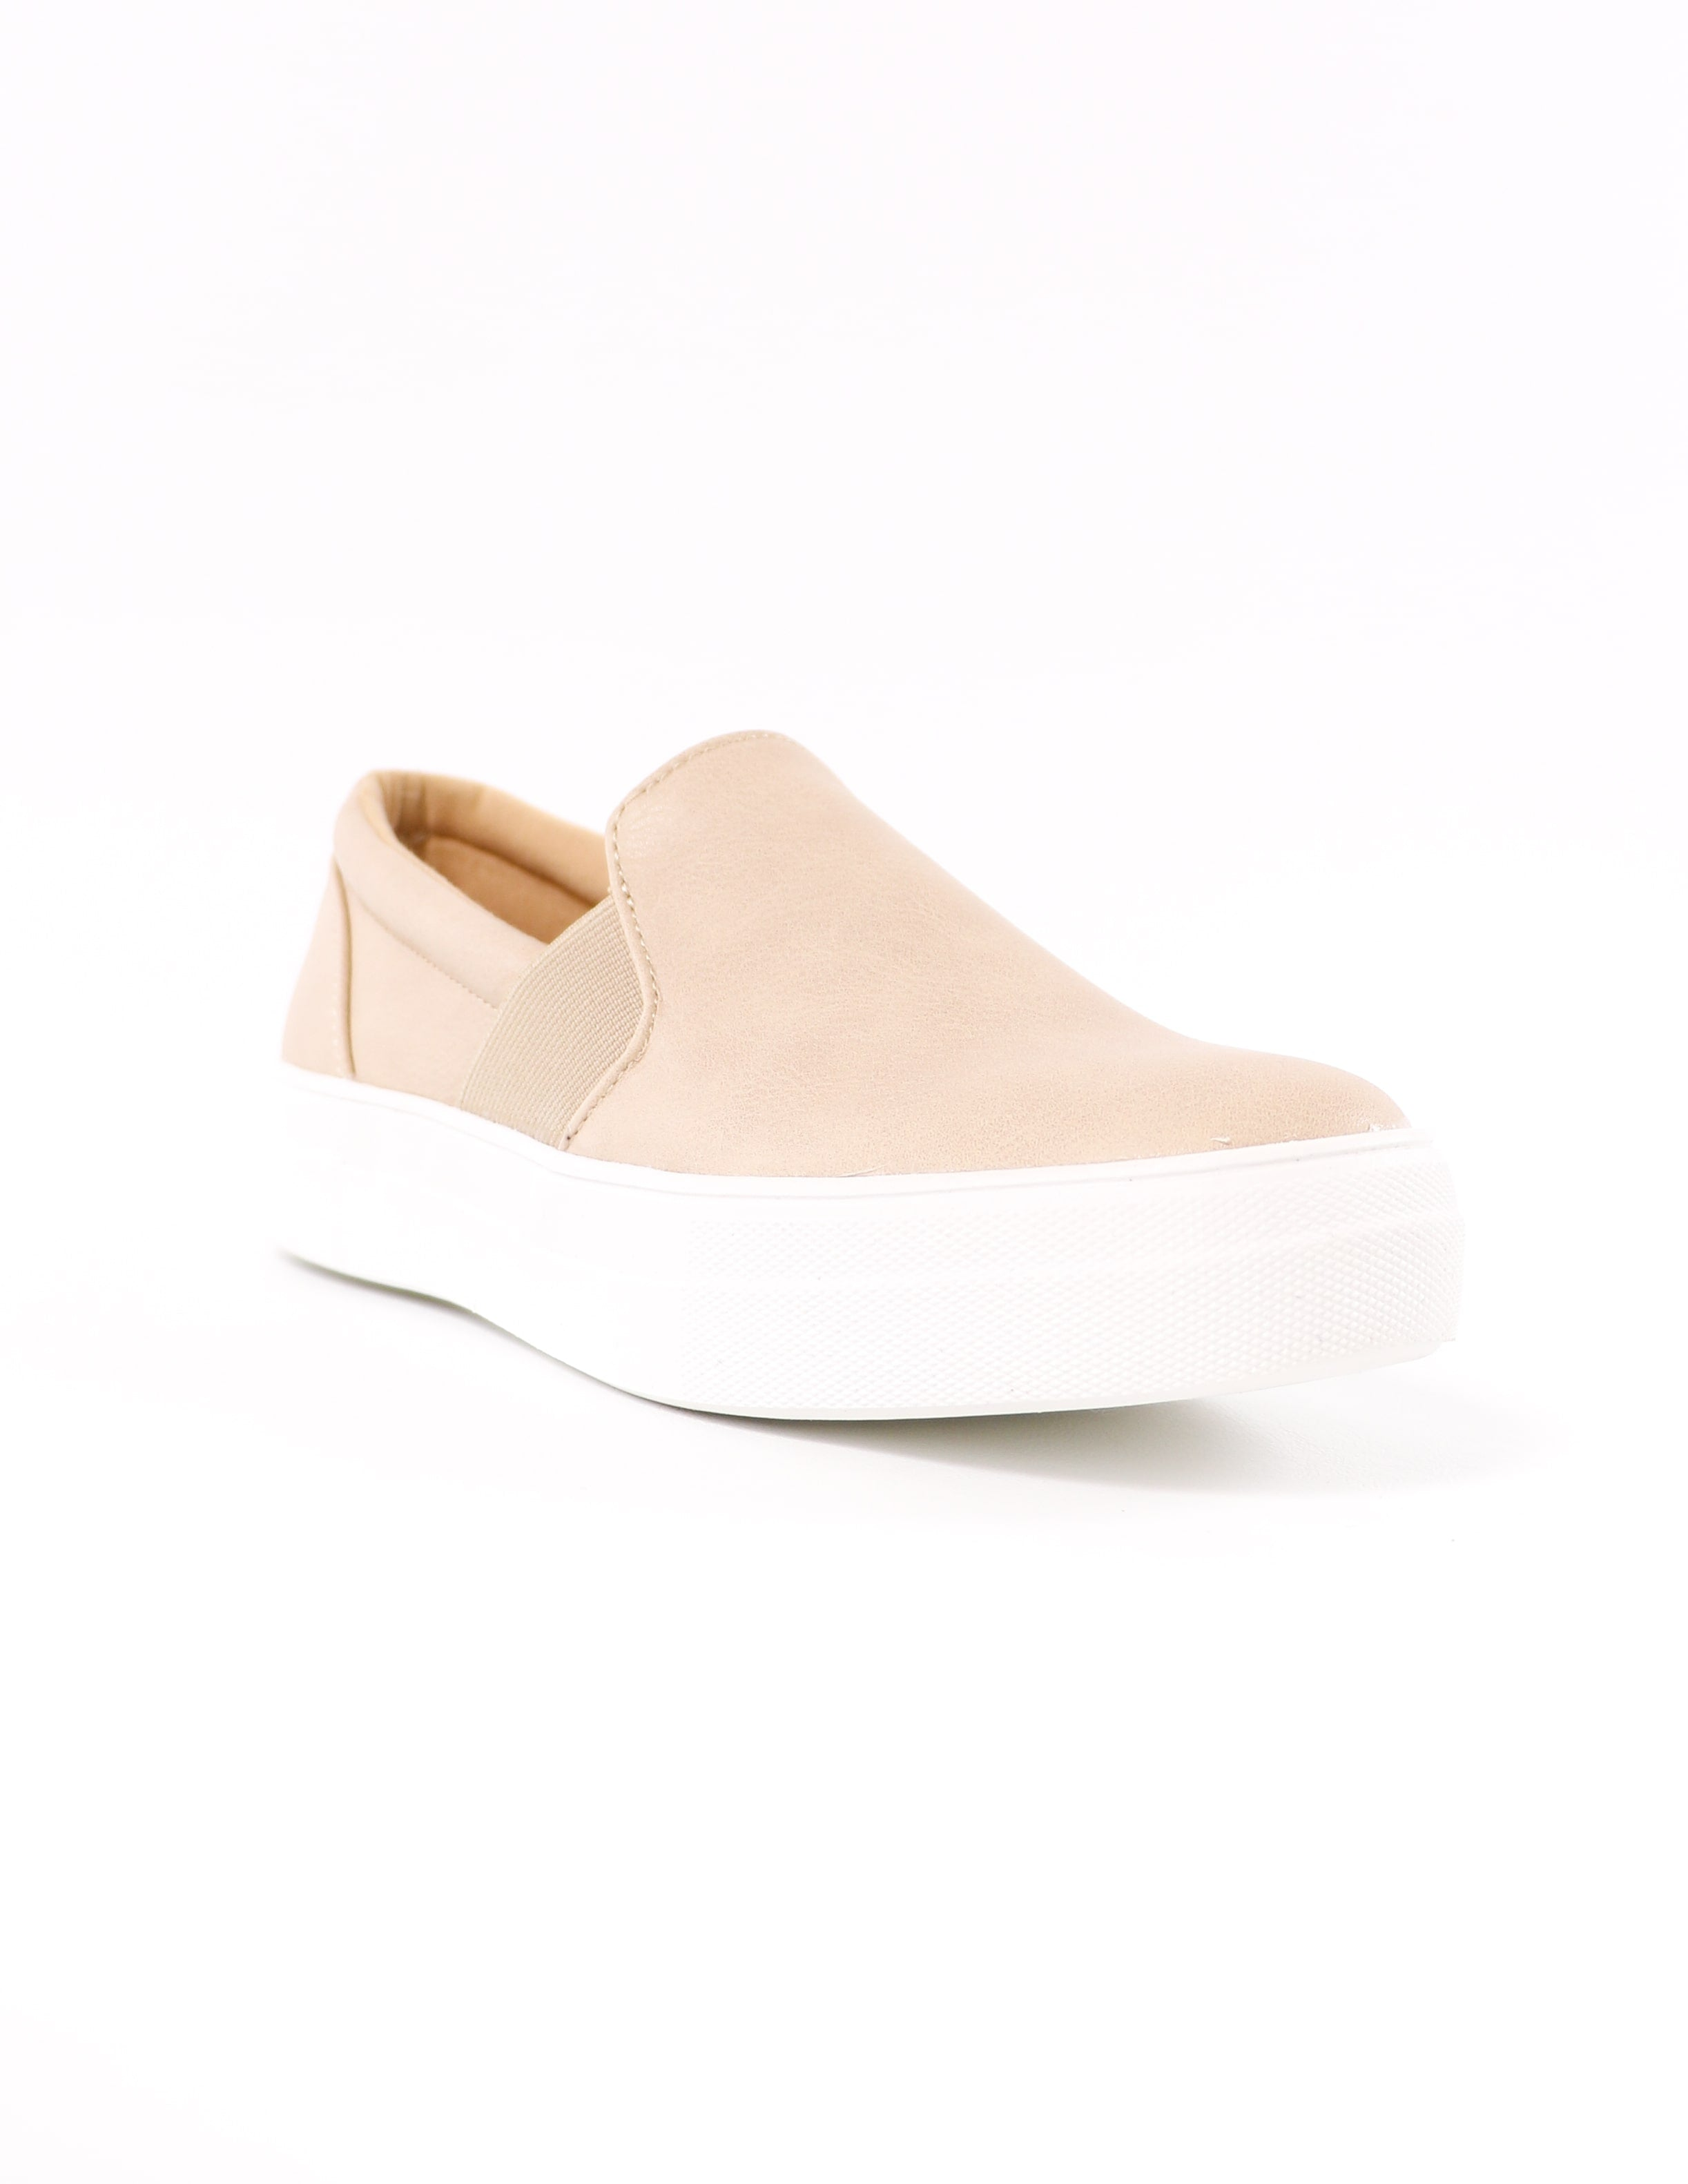 front of the natural kickin' it sole-o slip on sneaker on white background - elle bleu shoes